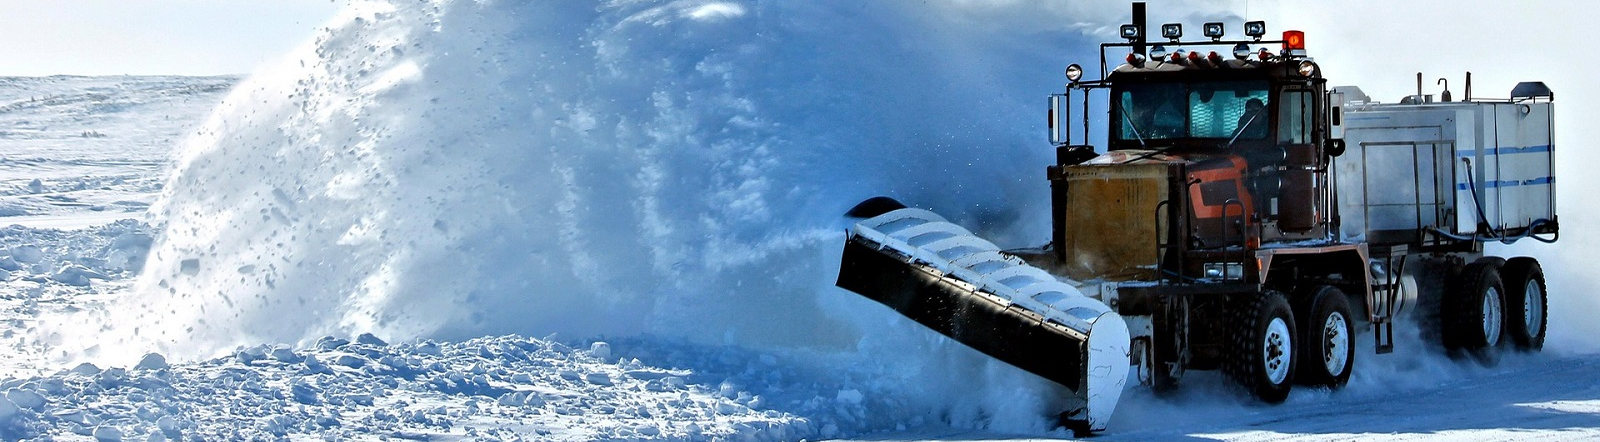 Image by Skentophyte from Pixabay of snow plow